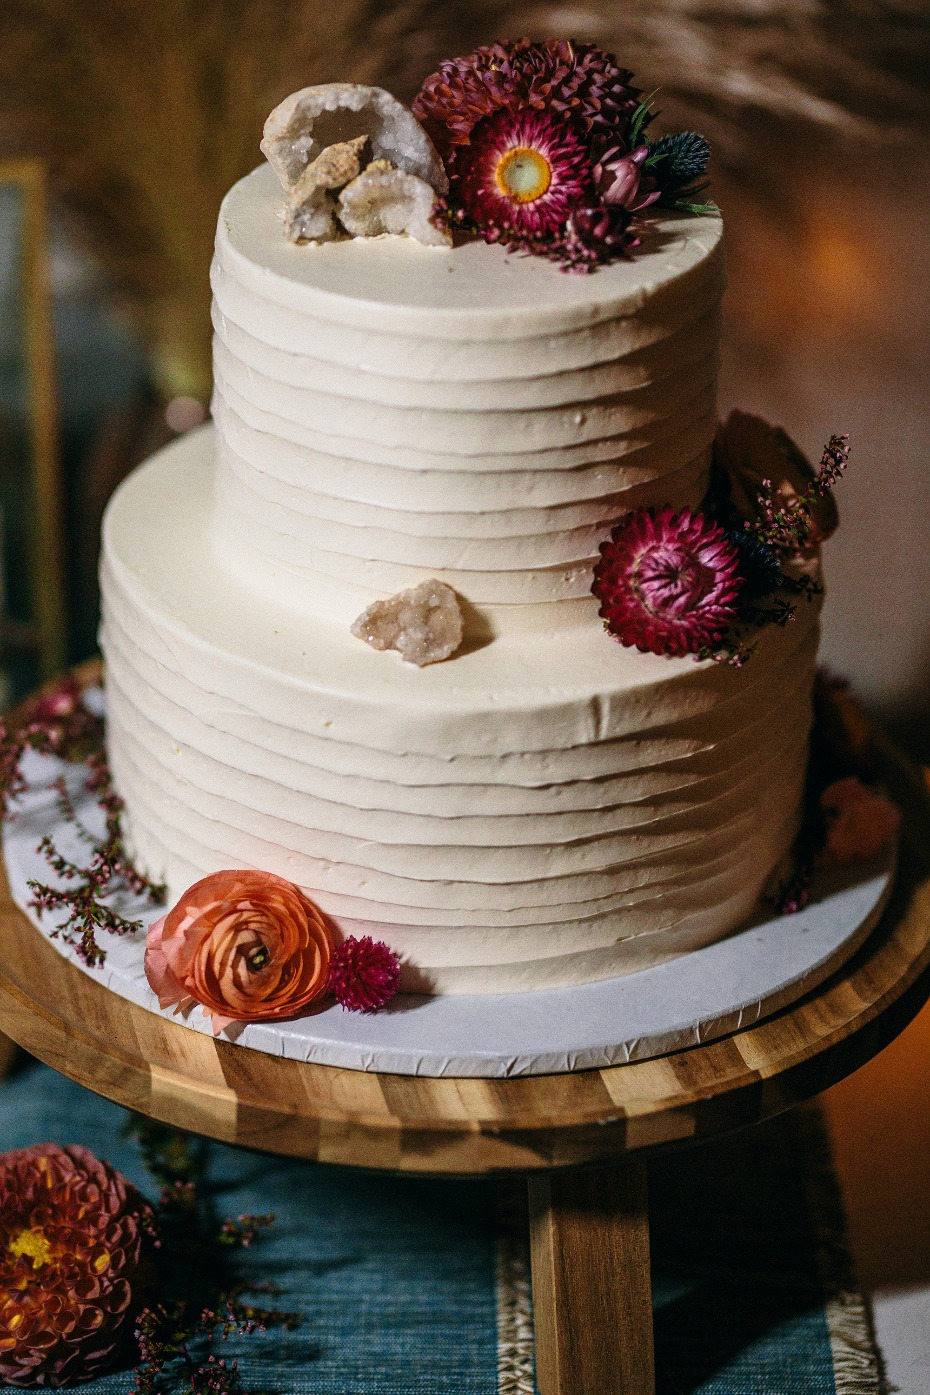 Geode and flower wedding cake